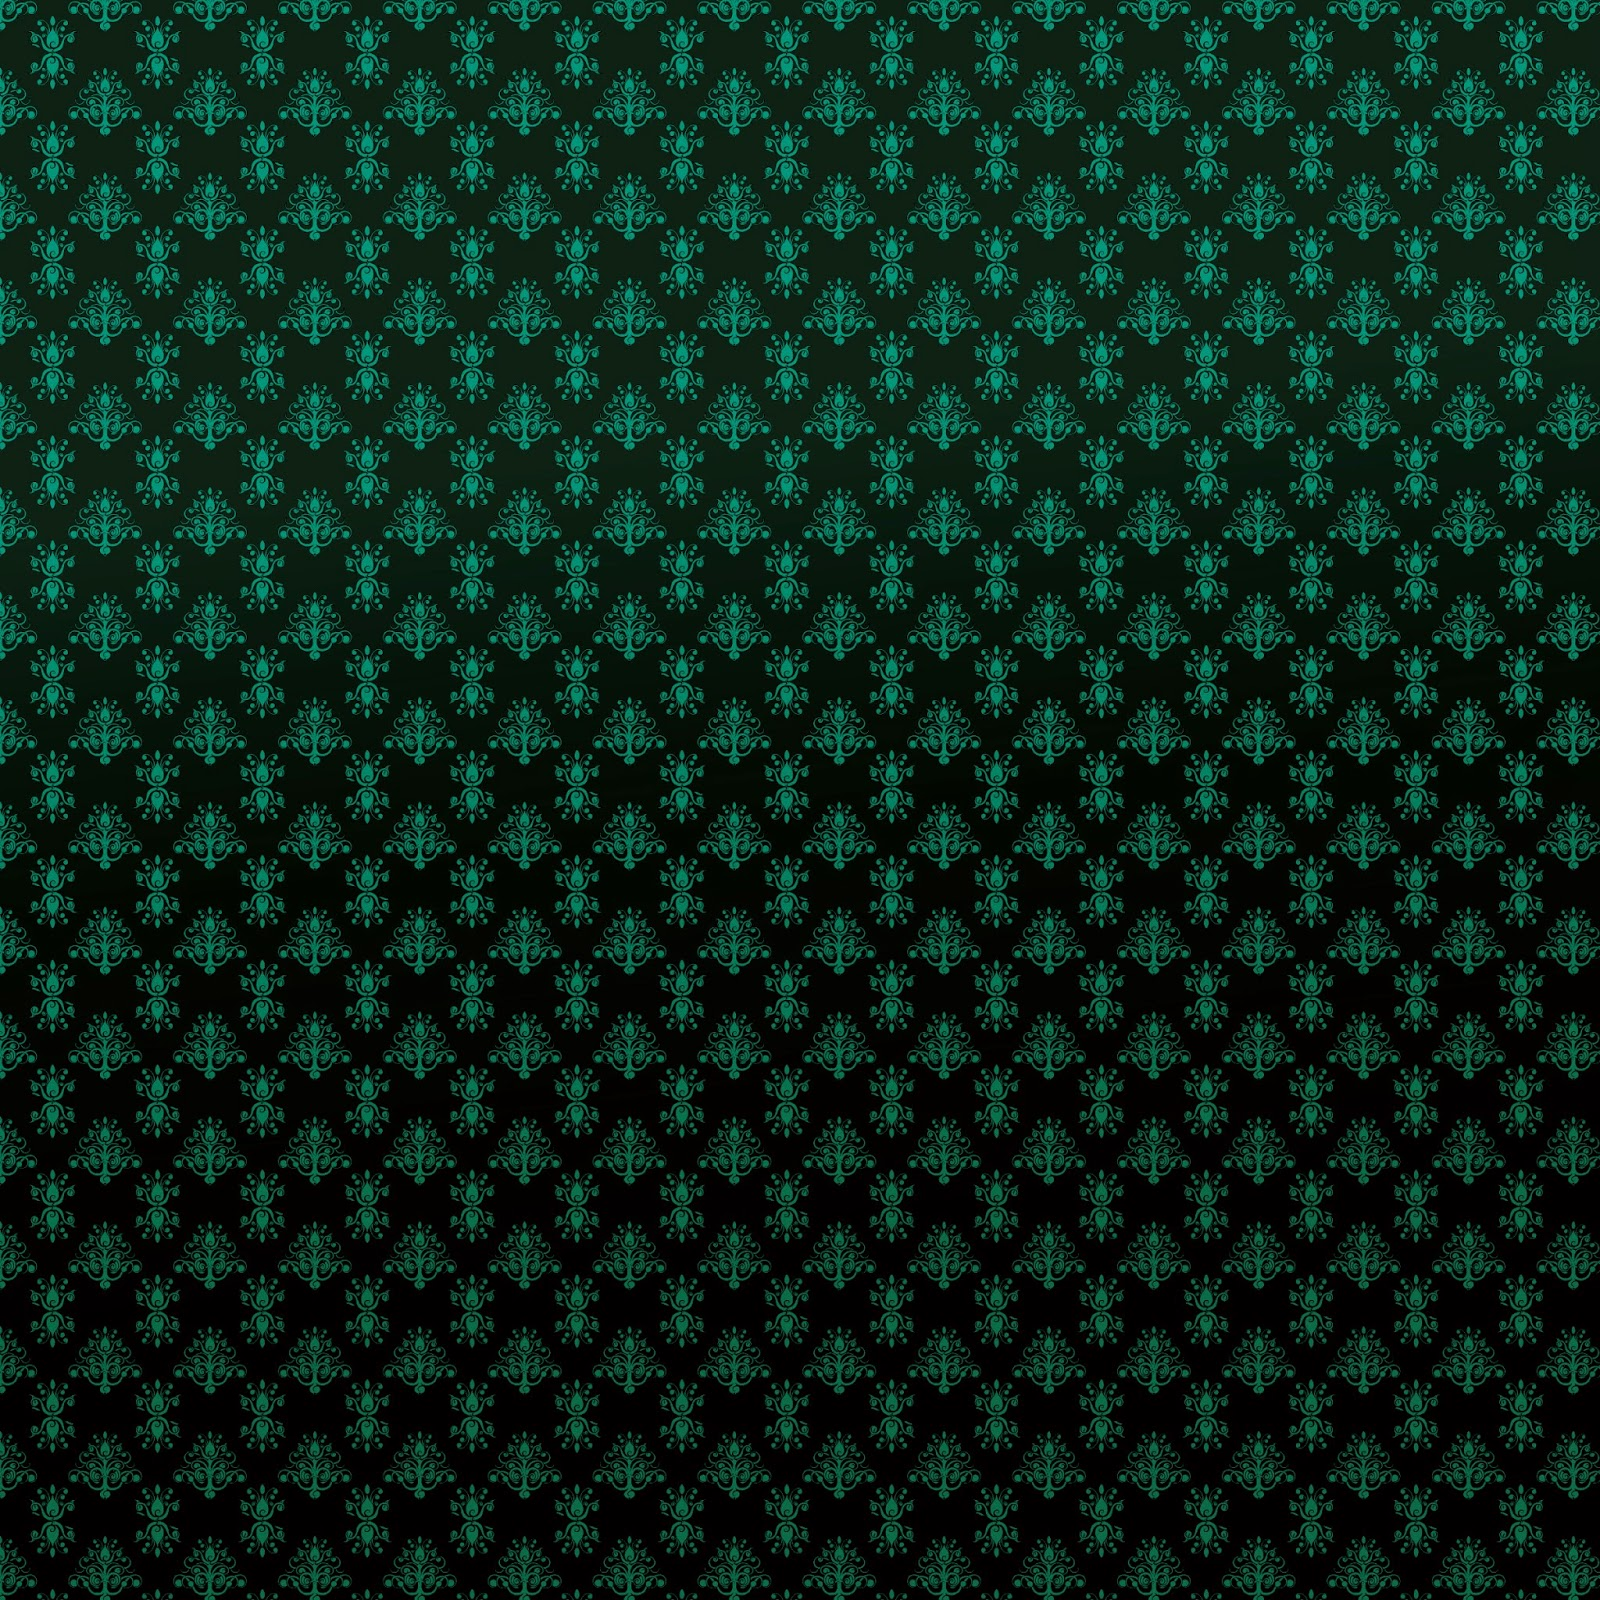 digital scrapbook paper vintage pattern black and green